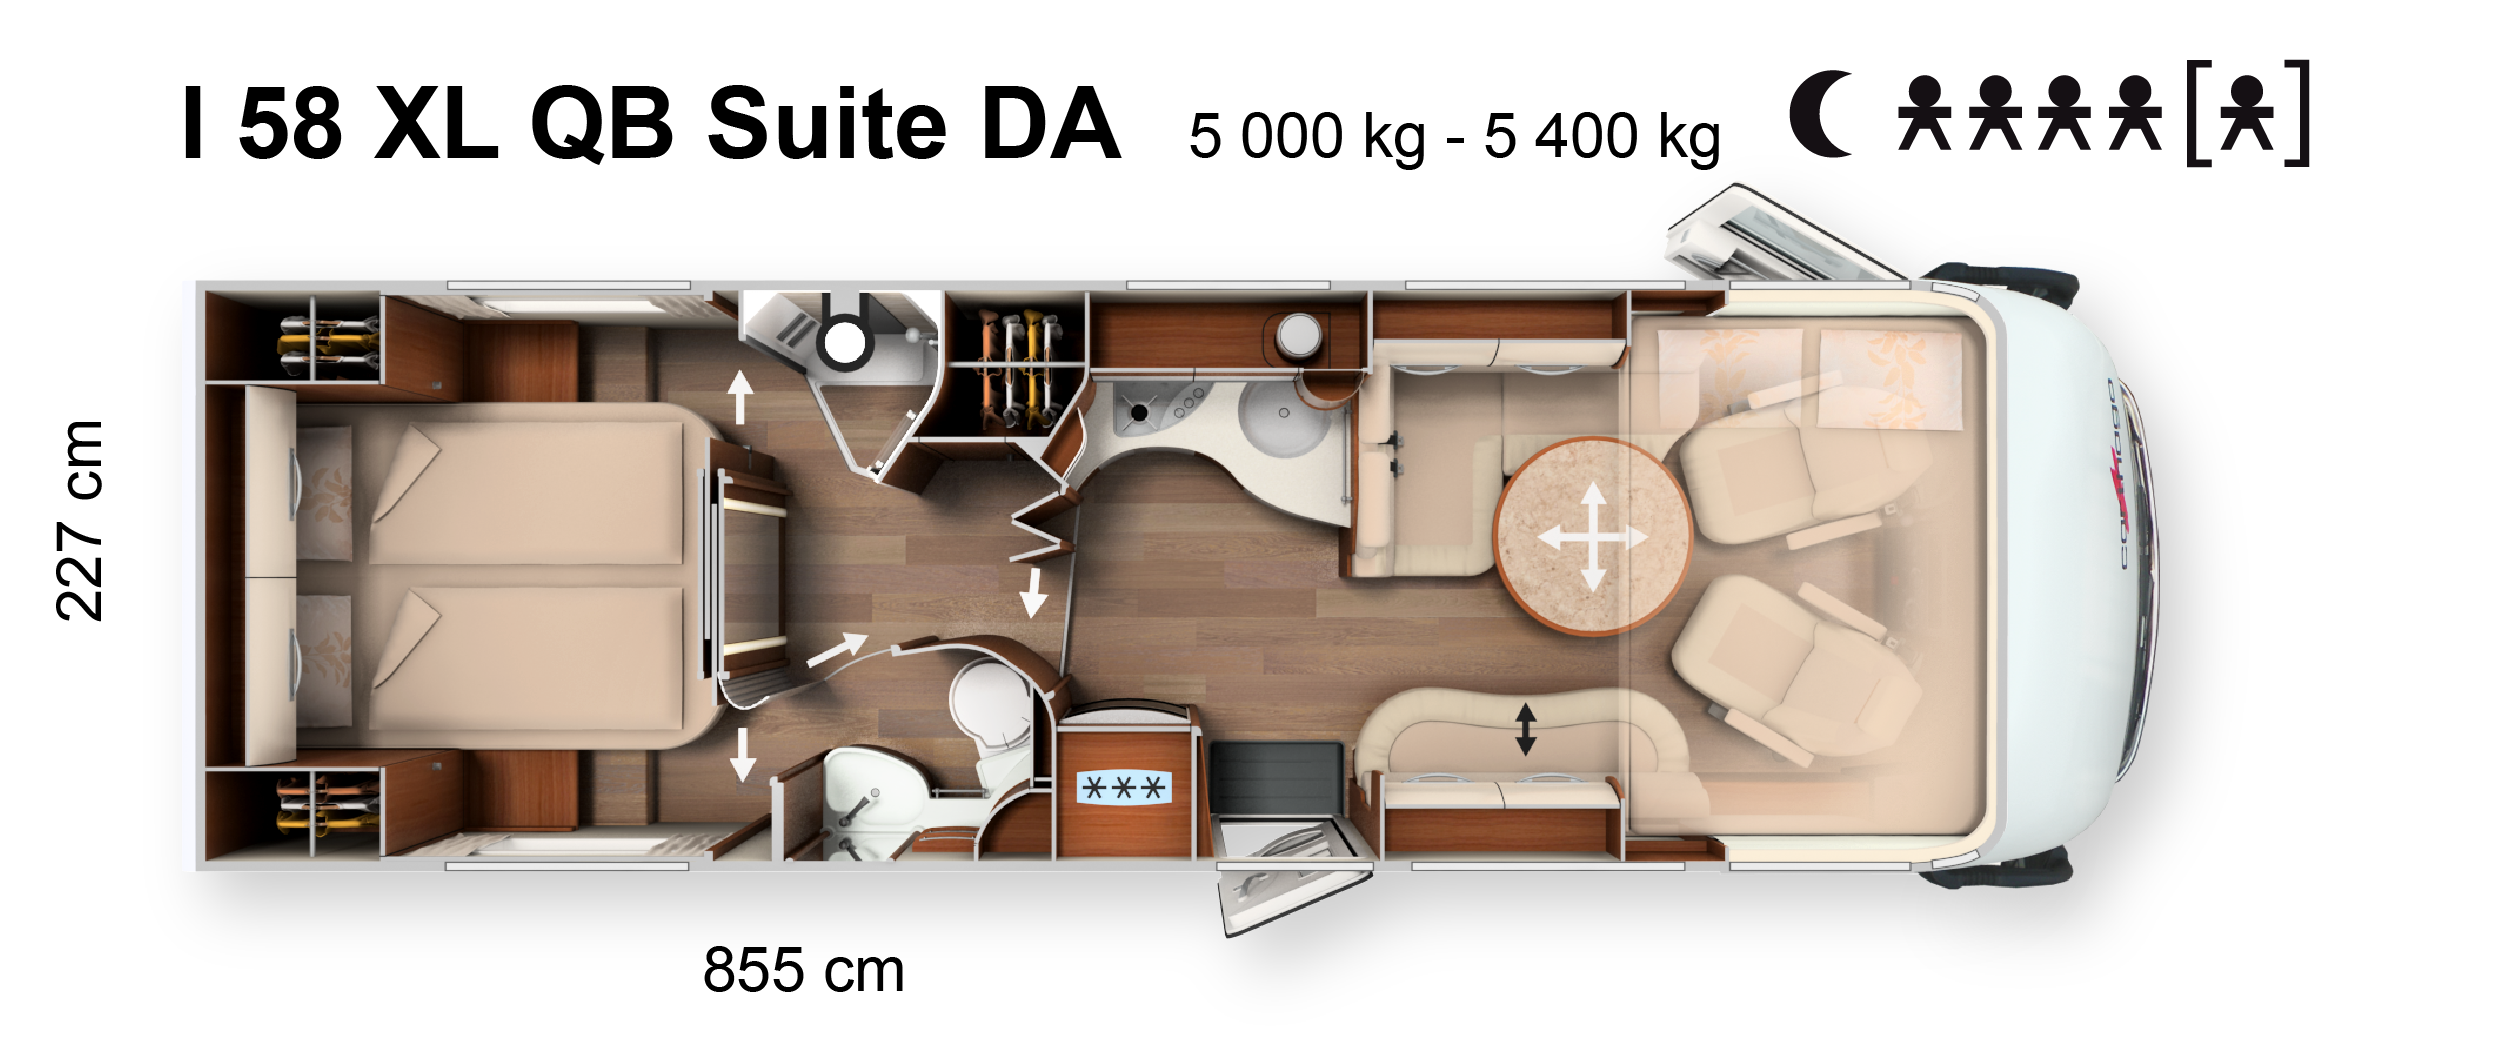 58 XL QB Suite DA-01